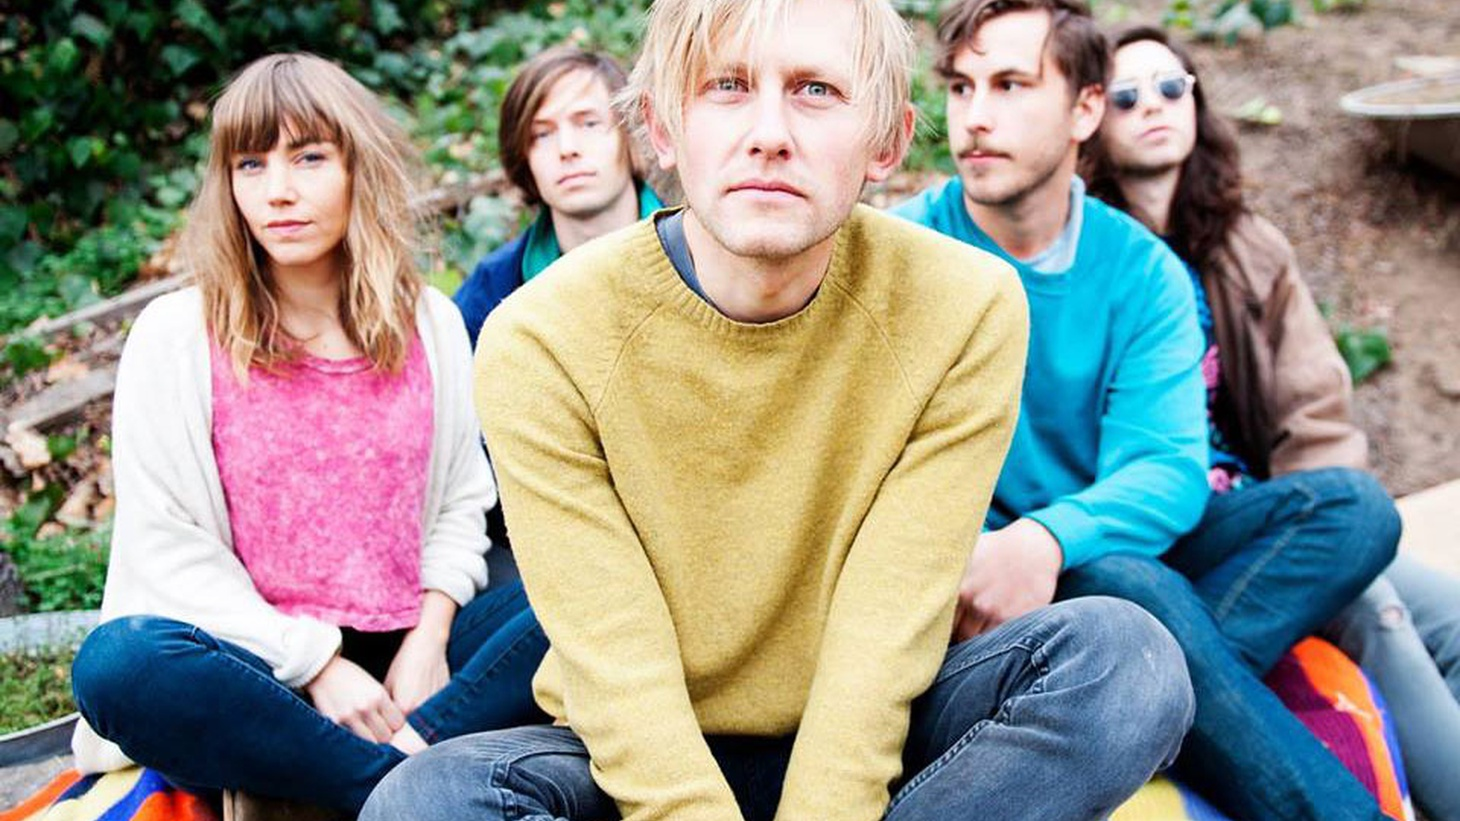 Bay area band Waters is fronted by Van Pierszalowski, the man behind the nautically-themed group Port O'Brien.